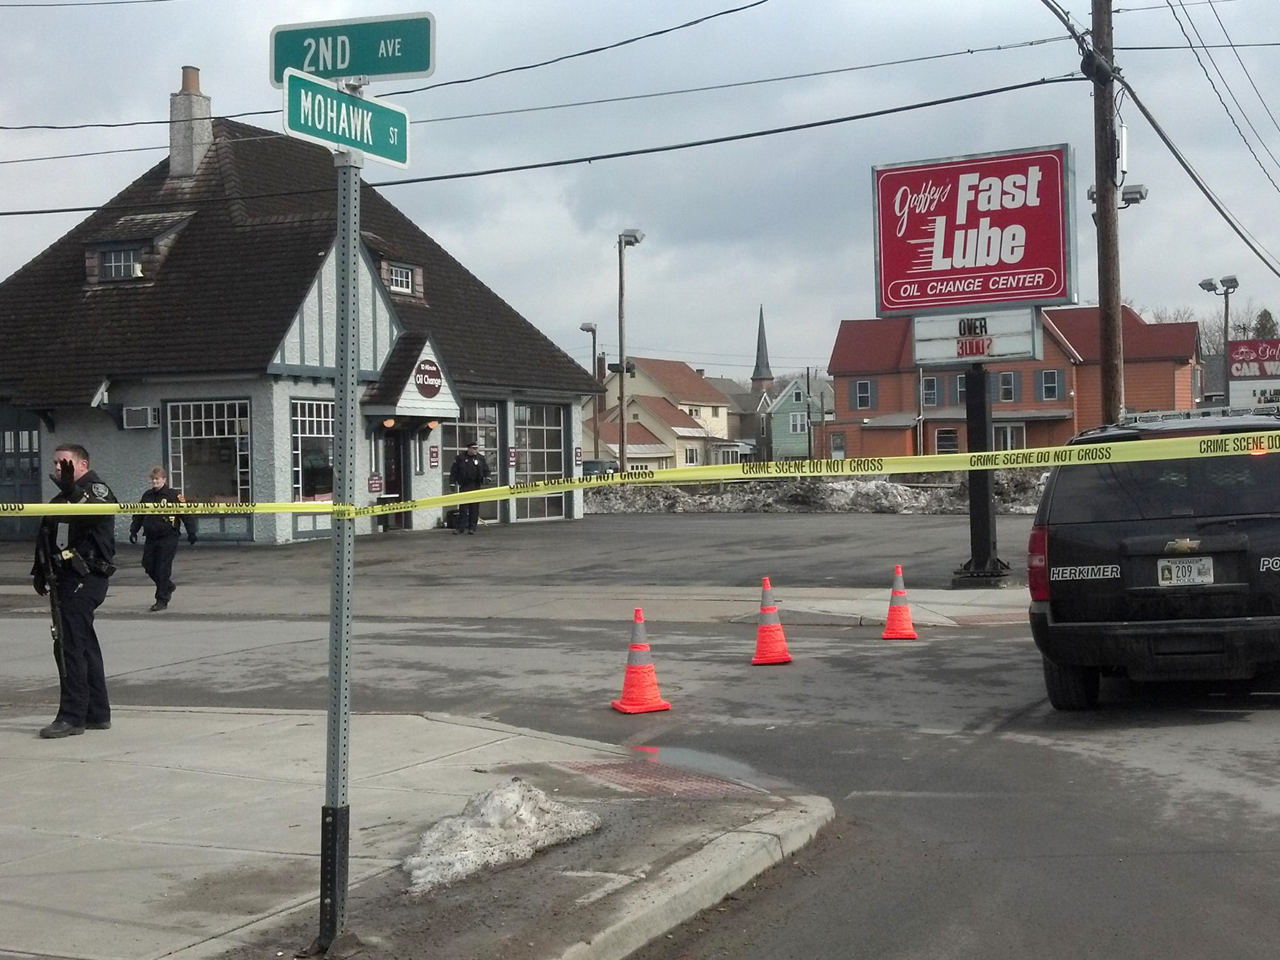 Upstate New York Shooting Update: Police may have located